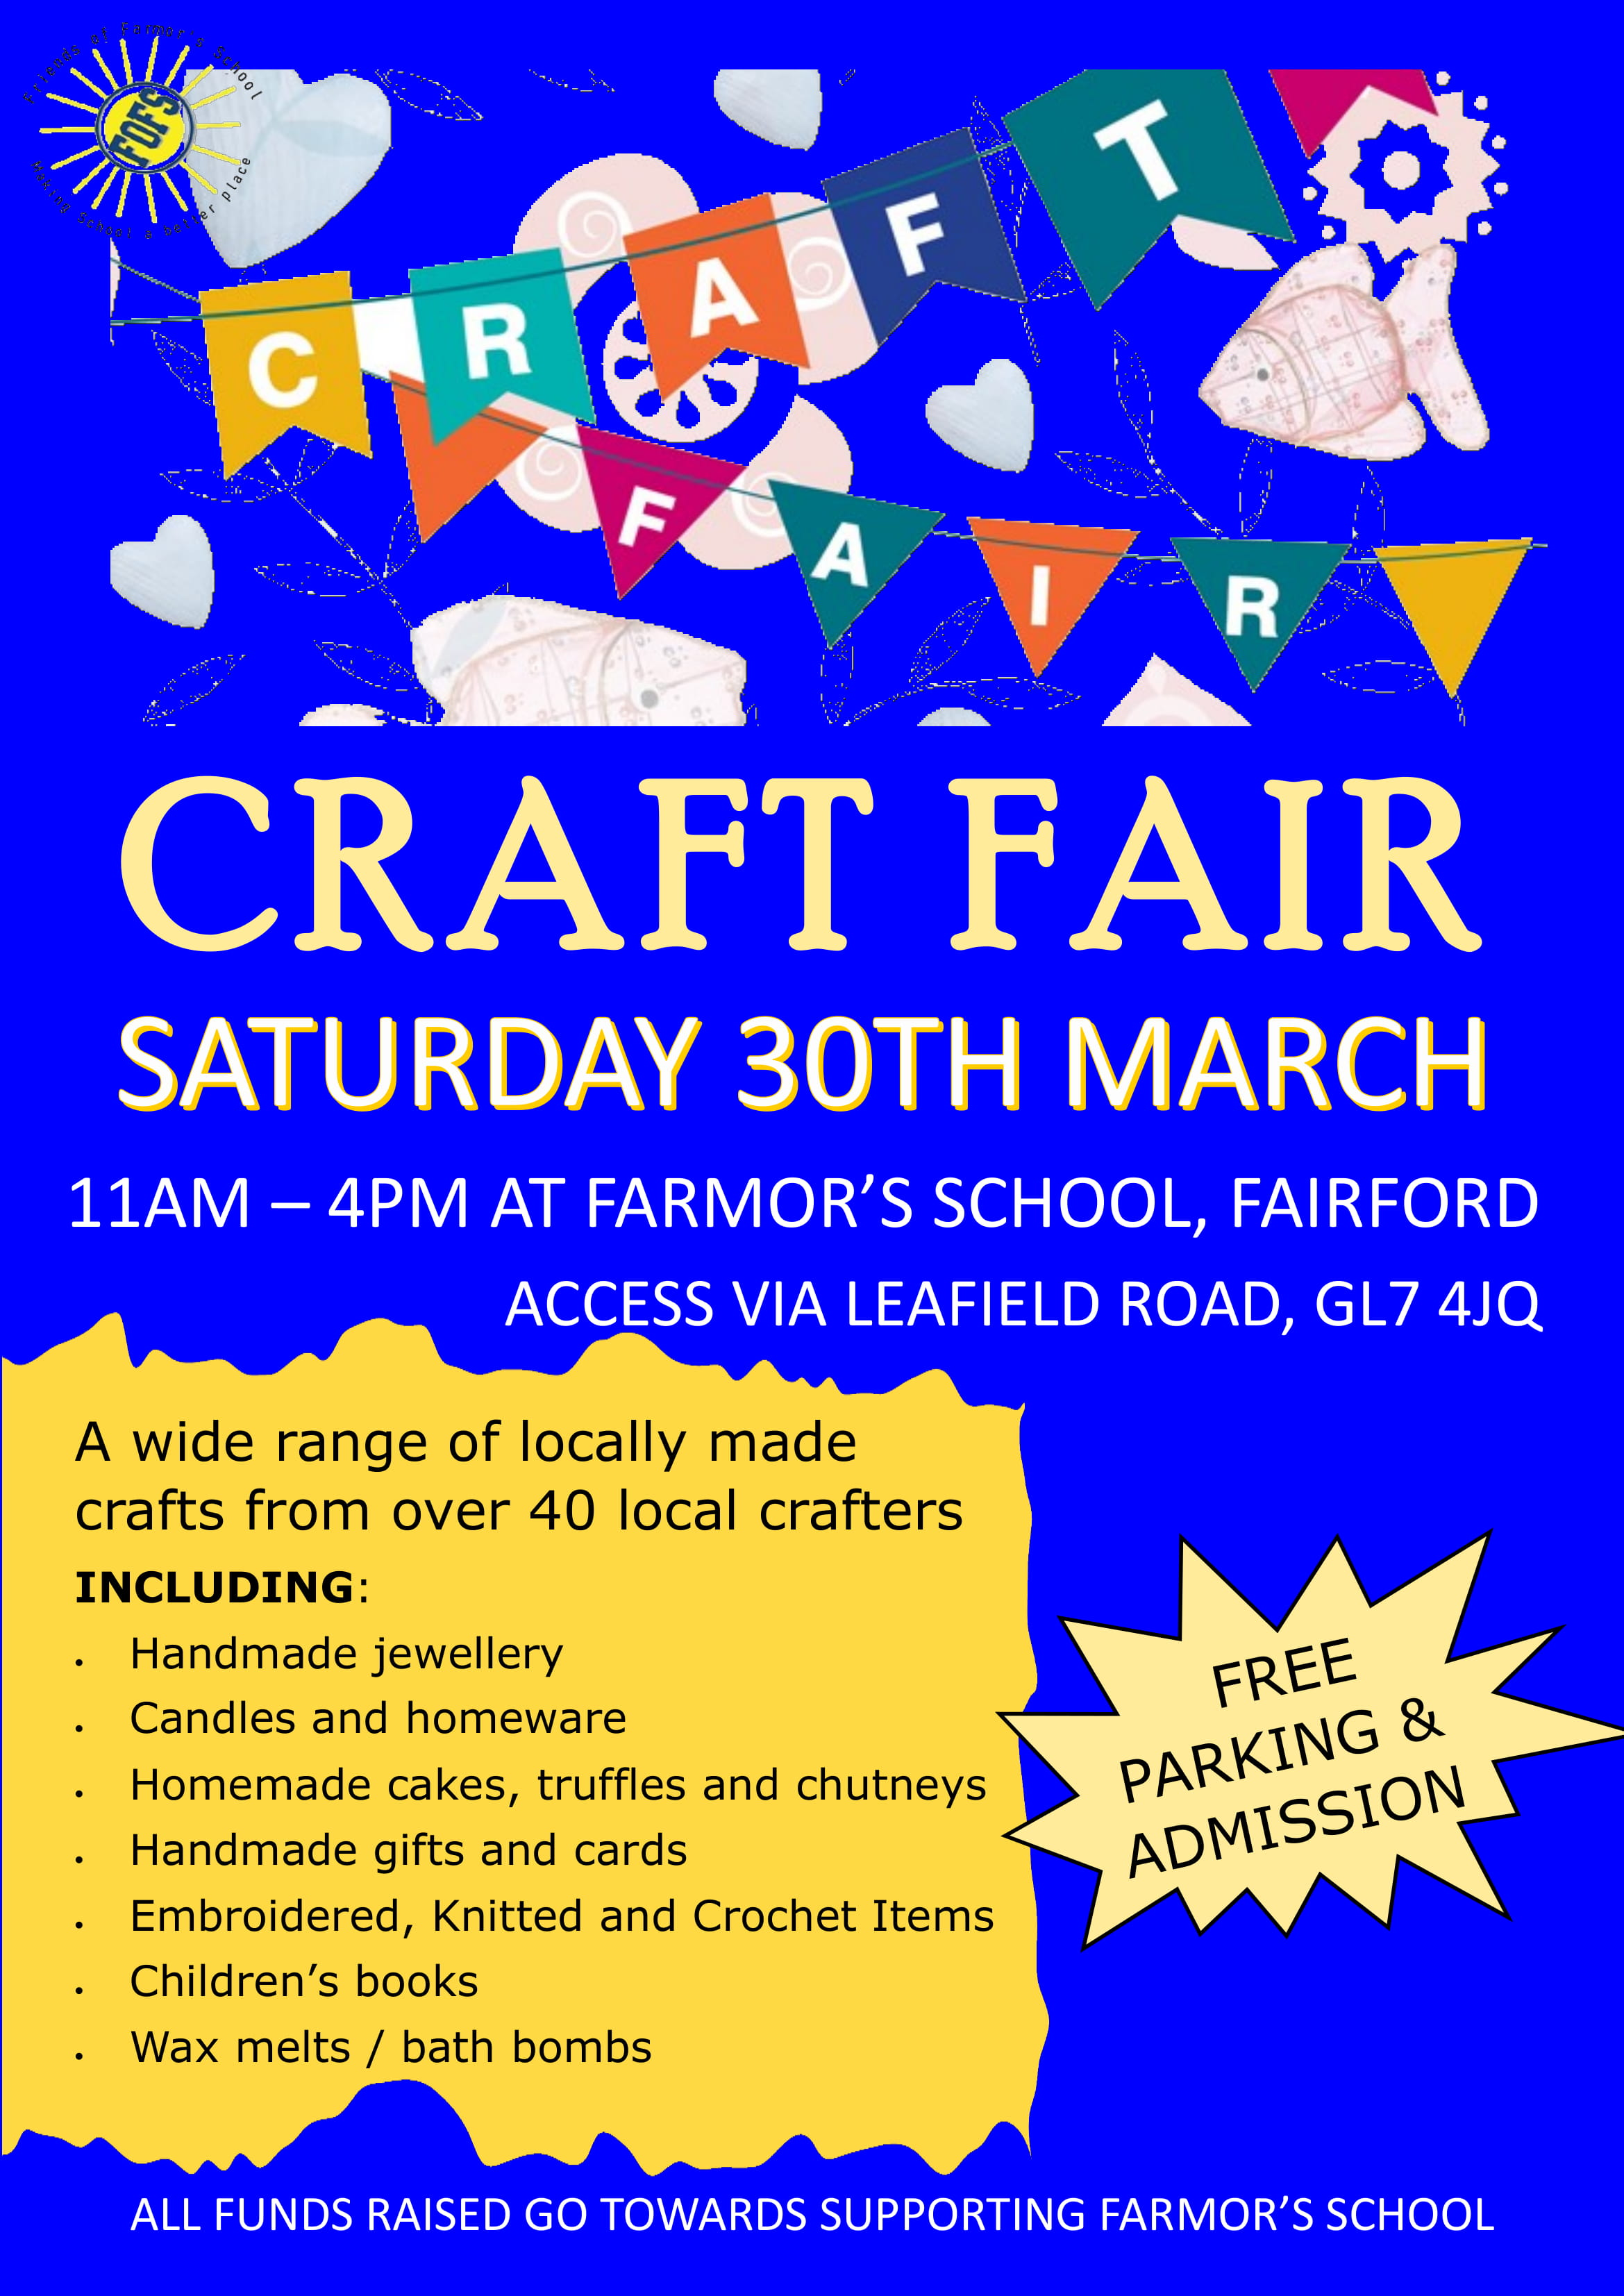 Craft Fair - Farmor's School, Fairford